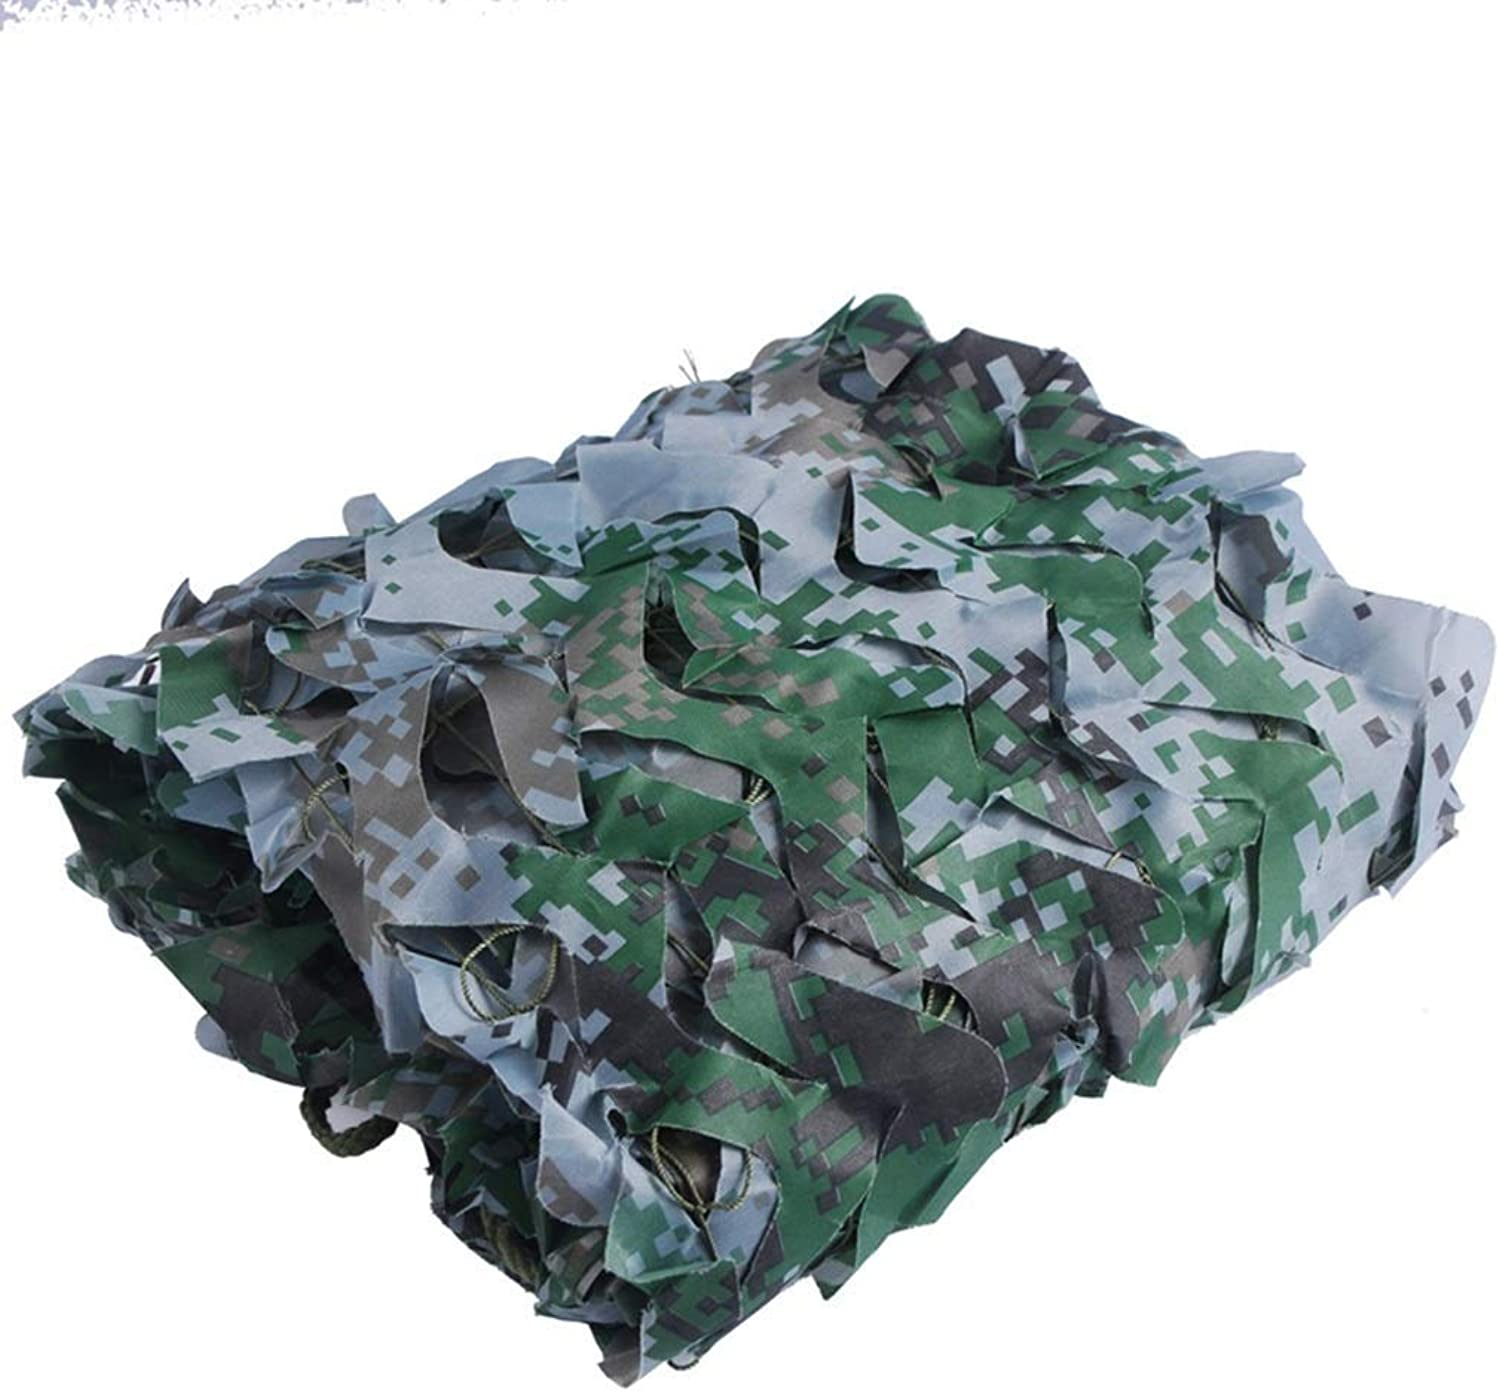 ee2270524dd2 Military Hide Shooting Hunting Camouflage Army Net 13.1ft)) 4M(9.8 3 ...